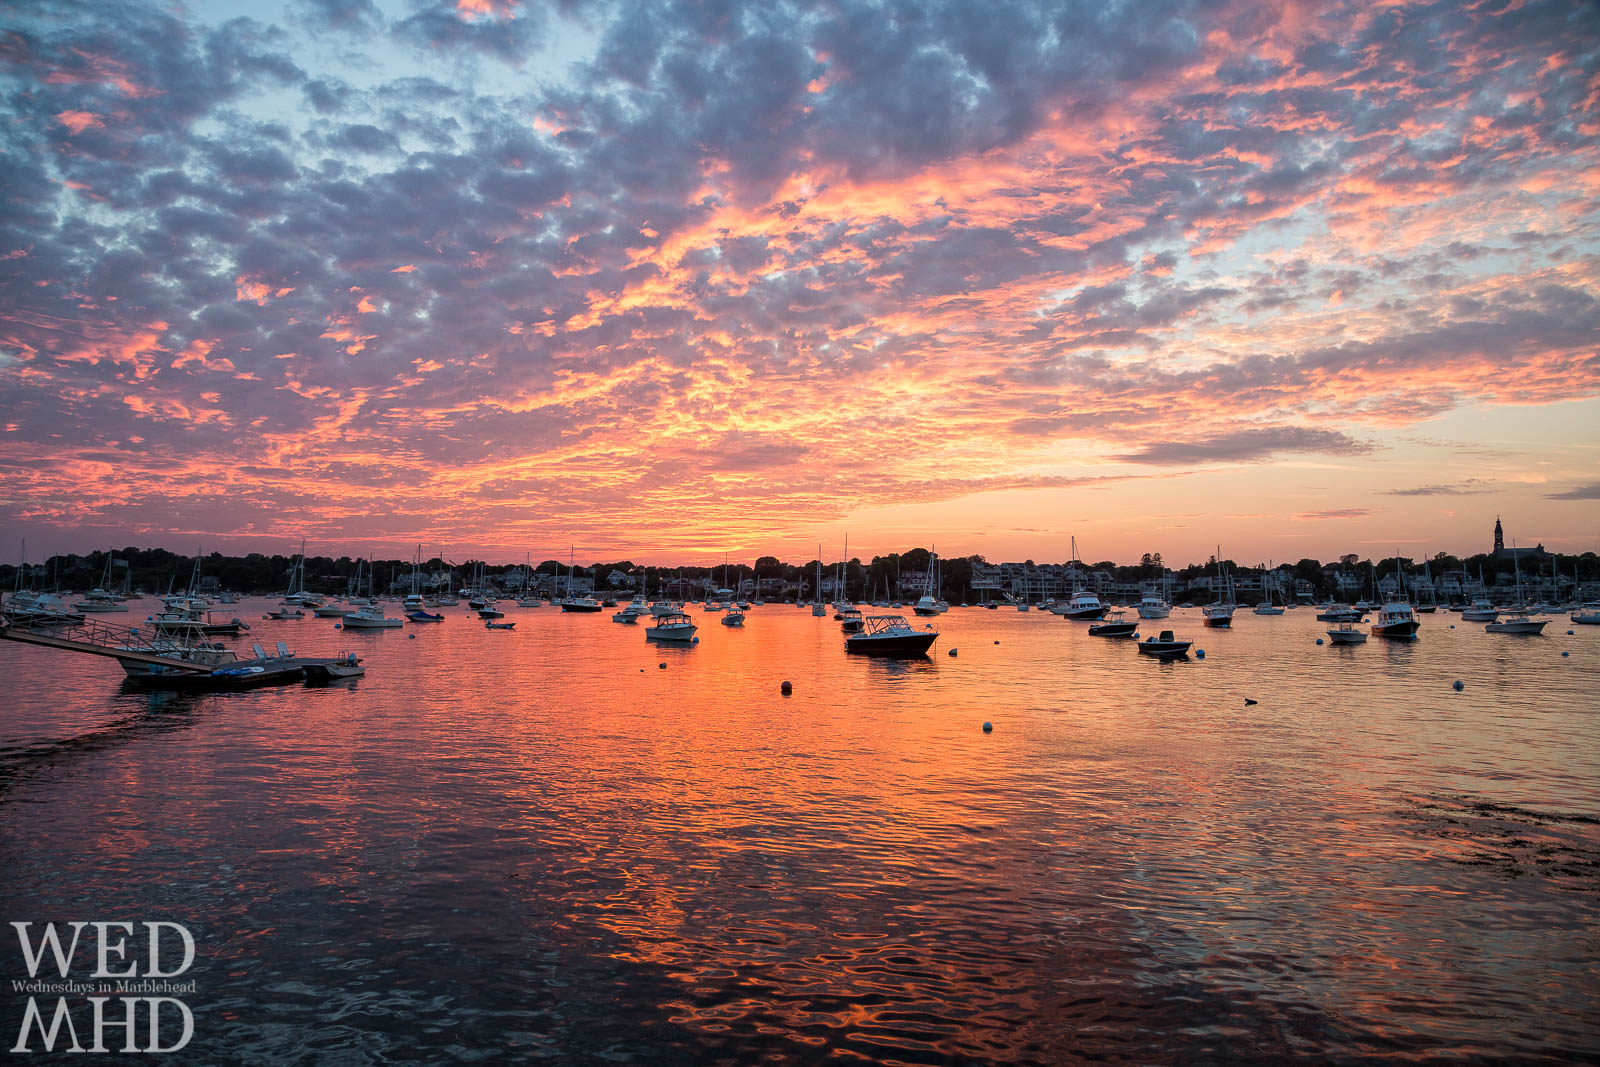 It won't be long before boats fill their moorings and we can once again enjoy warm Summer sunsets on the Harbor